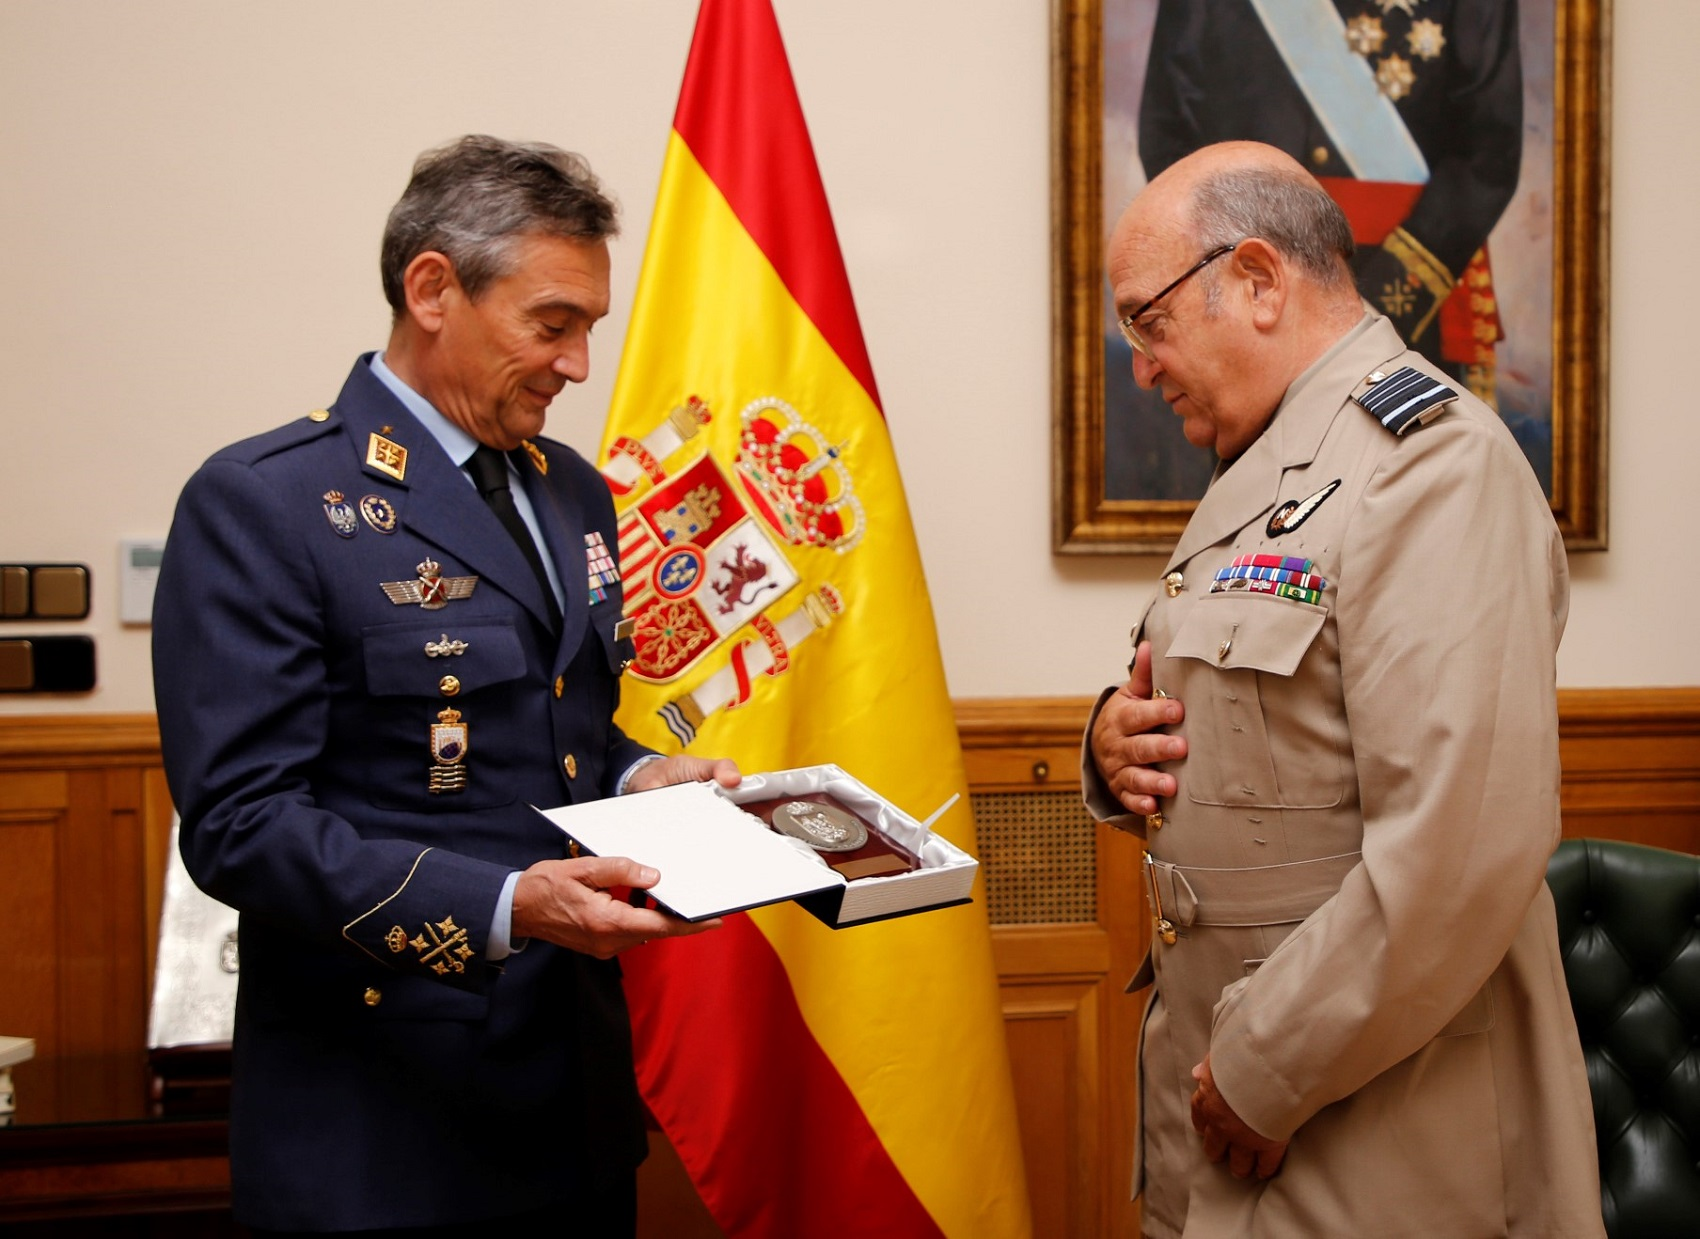 Chairman of NATO´s Military Committee has a meeting with Spanish CHOD